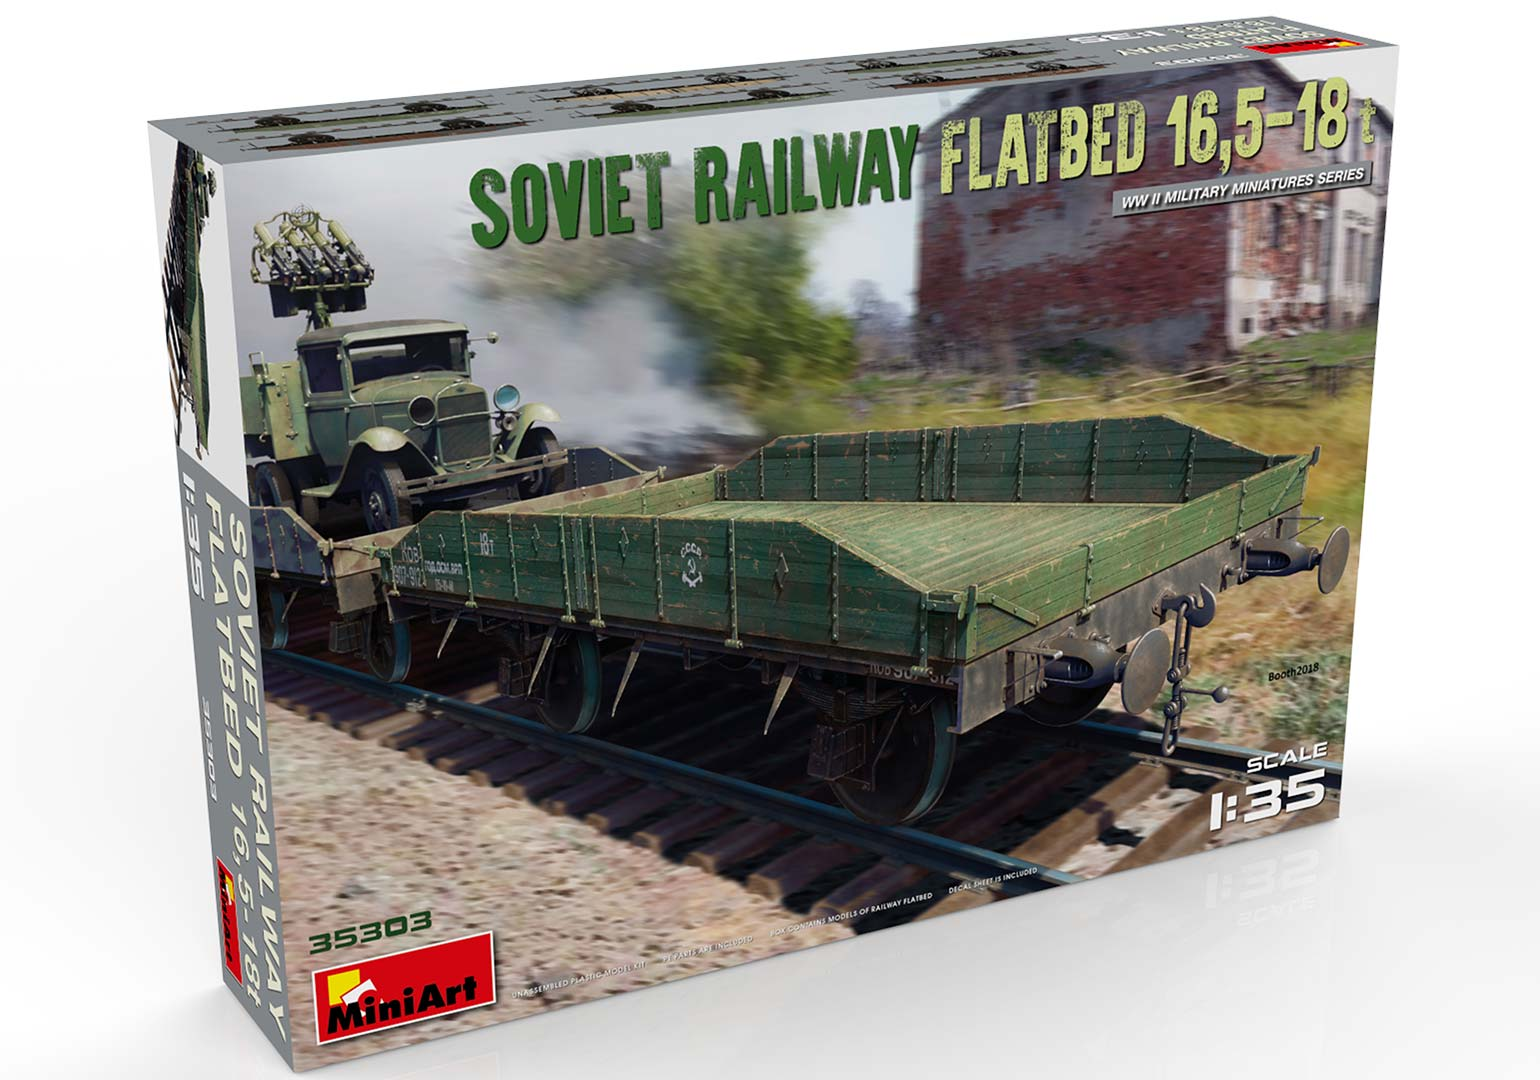 New Photos of Kit: 35303 SOVIET RAILWAY FLATBED 16,5-18t